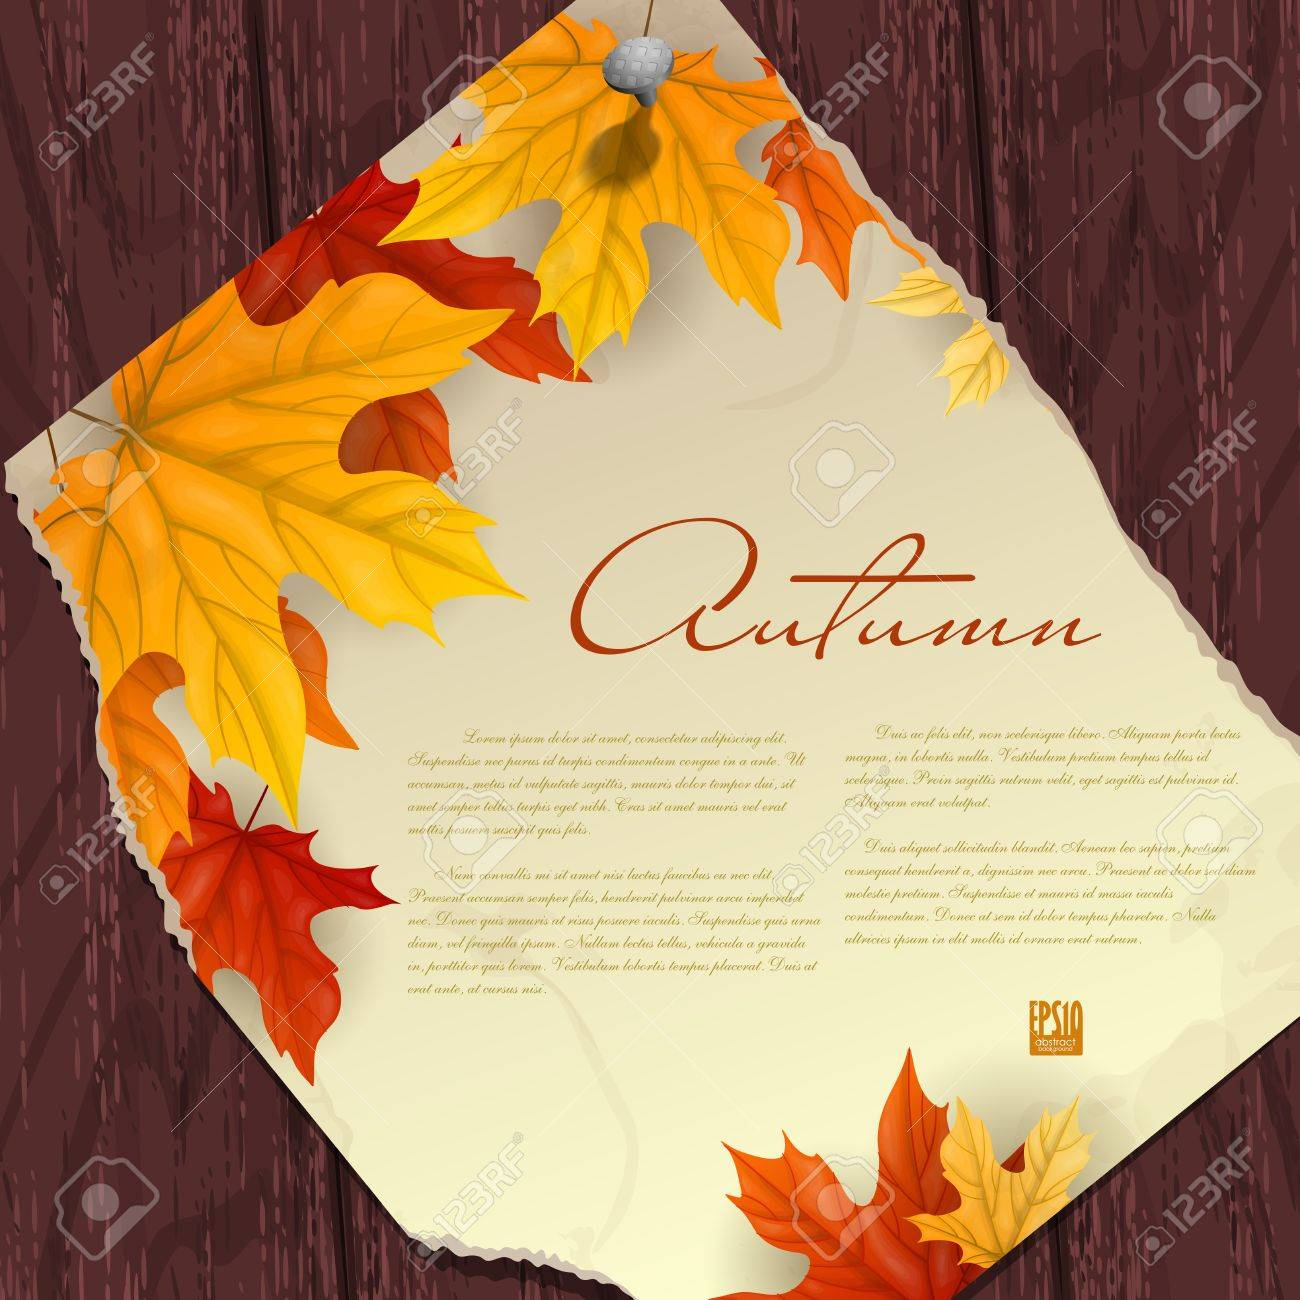 Autumn background with leaves.  Vector illustration. Stock Vector - 16977211